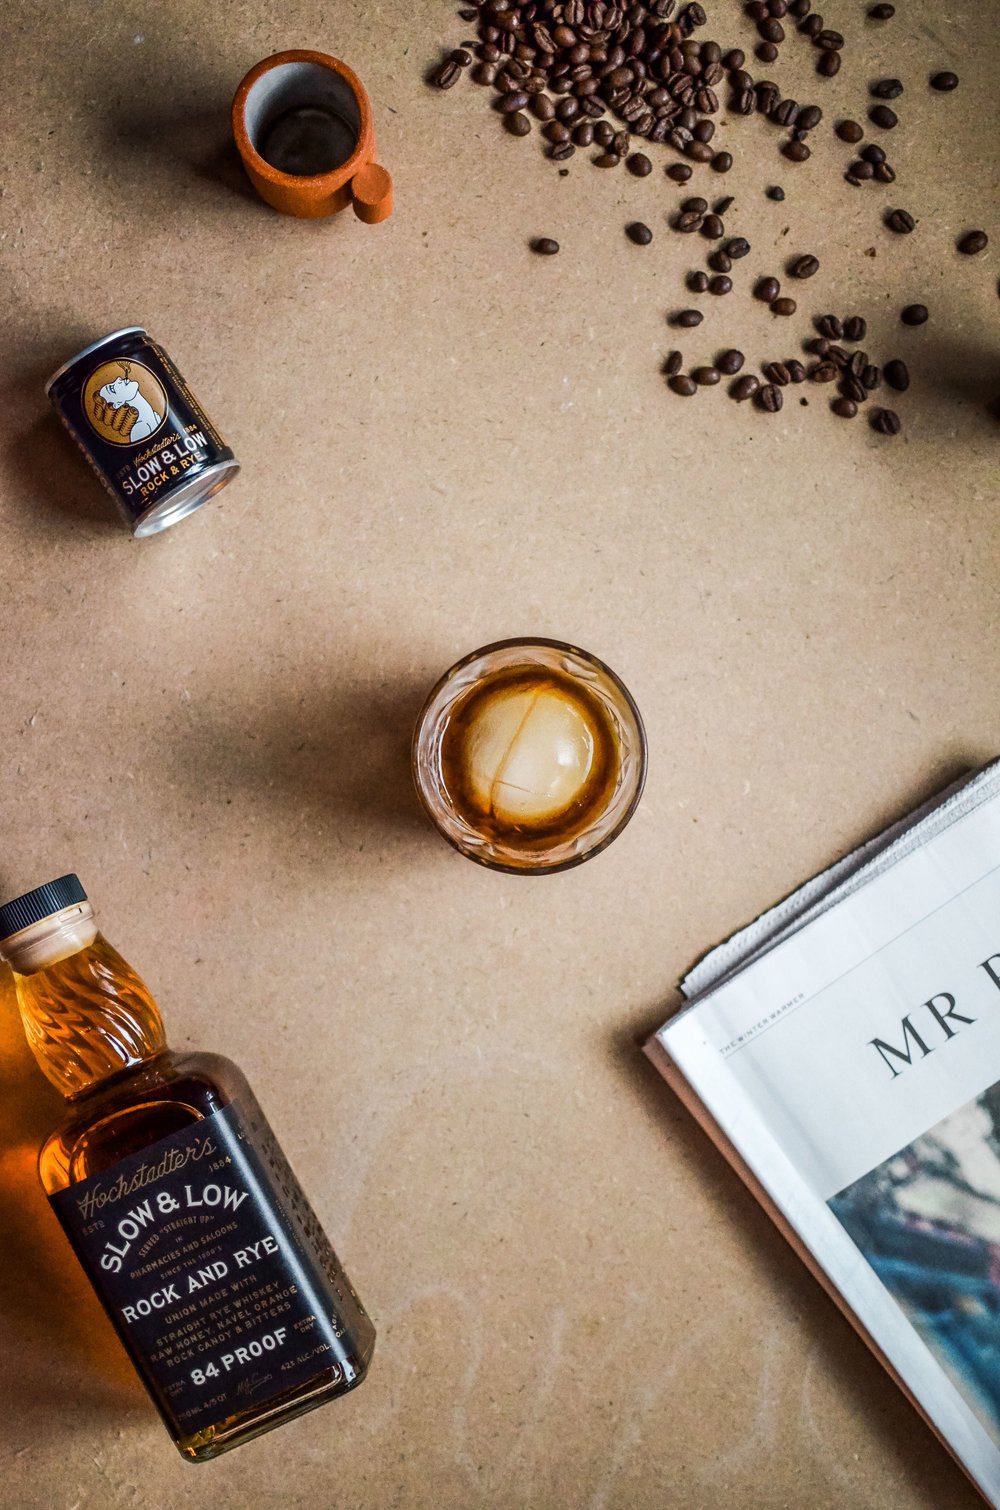 Wendling_Boyd_Coffee_Old_Fashioned_Low_And_Slow_Whiskey-7.jpg